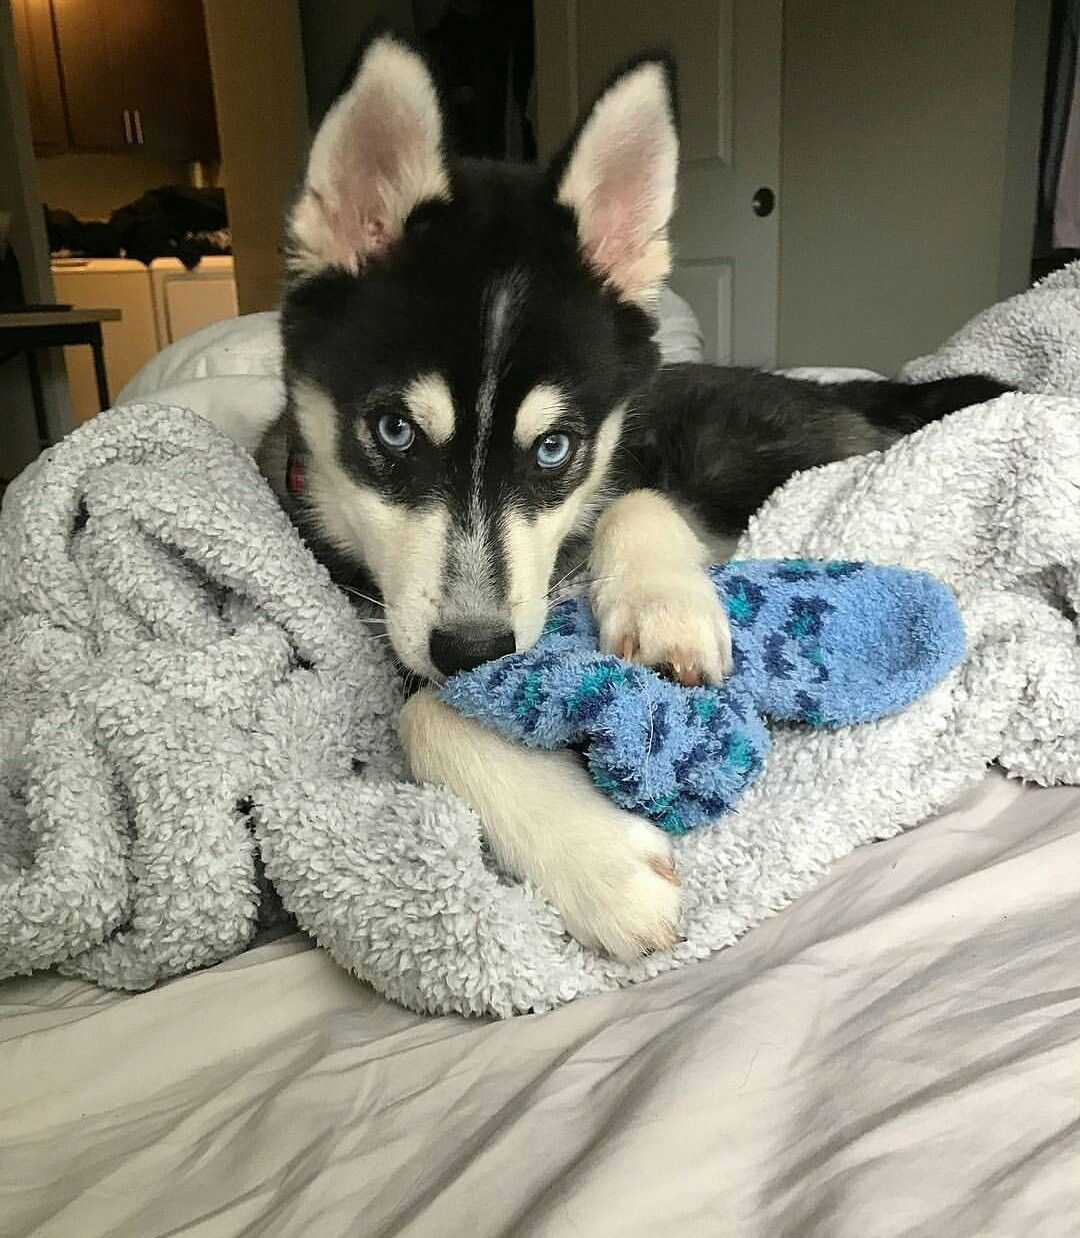 Nikki shik 🌹 dog animals husky bed Siberian husky